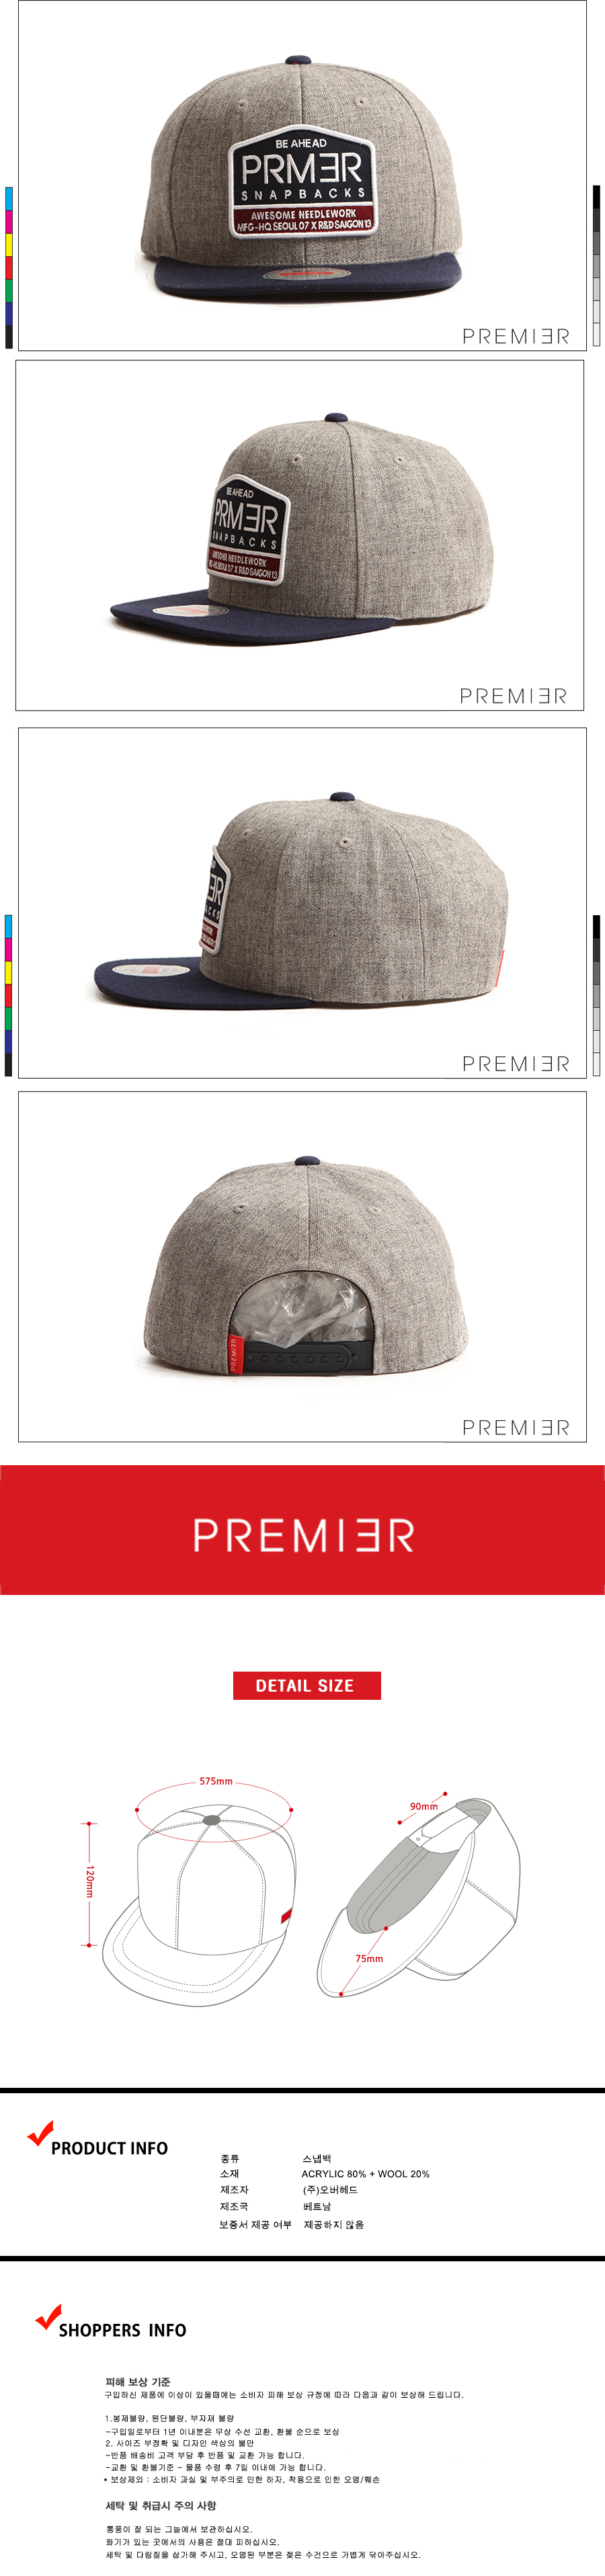 [ PREMIER ] [Premier] Snapback Pentagon Patch Grey/Navy (P918)